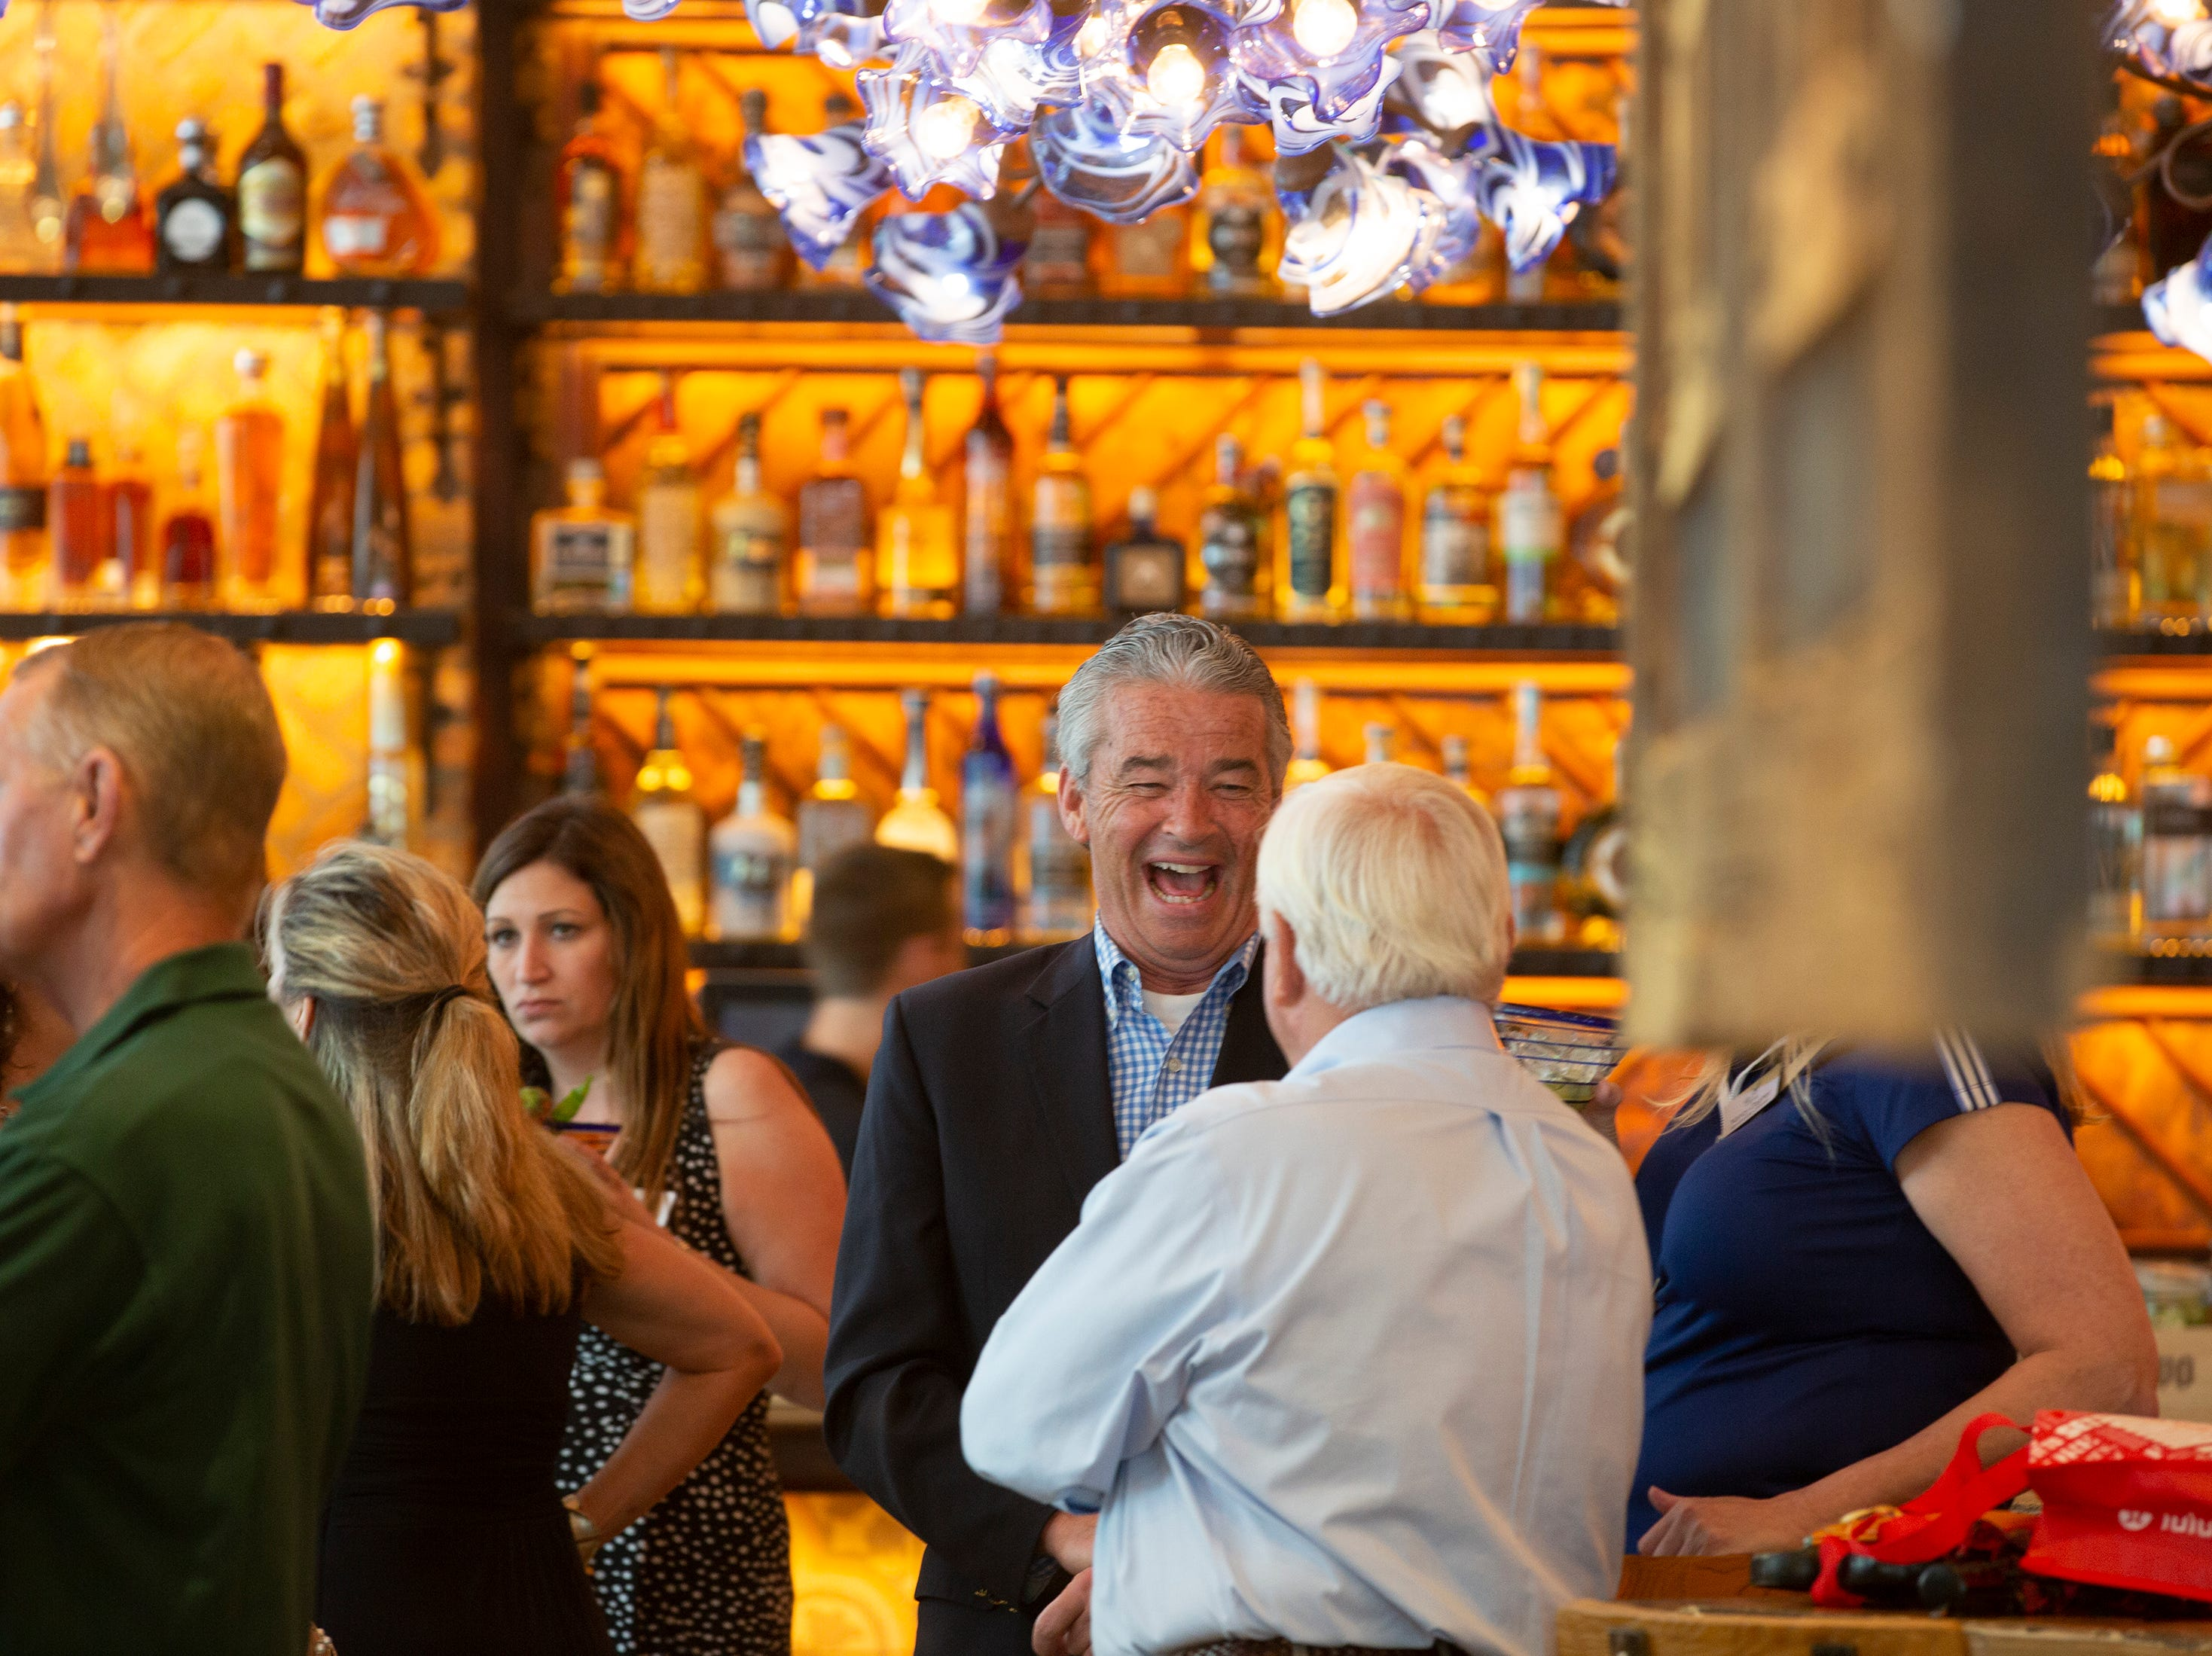 Invited guests enjoy drinks during a soft opening, Tuesday, Feb. 26, 2019, at Rocco's Tacos & Tequila Bar in Naples.